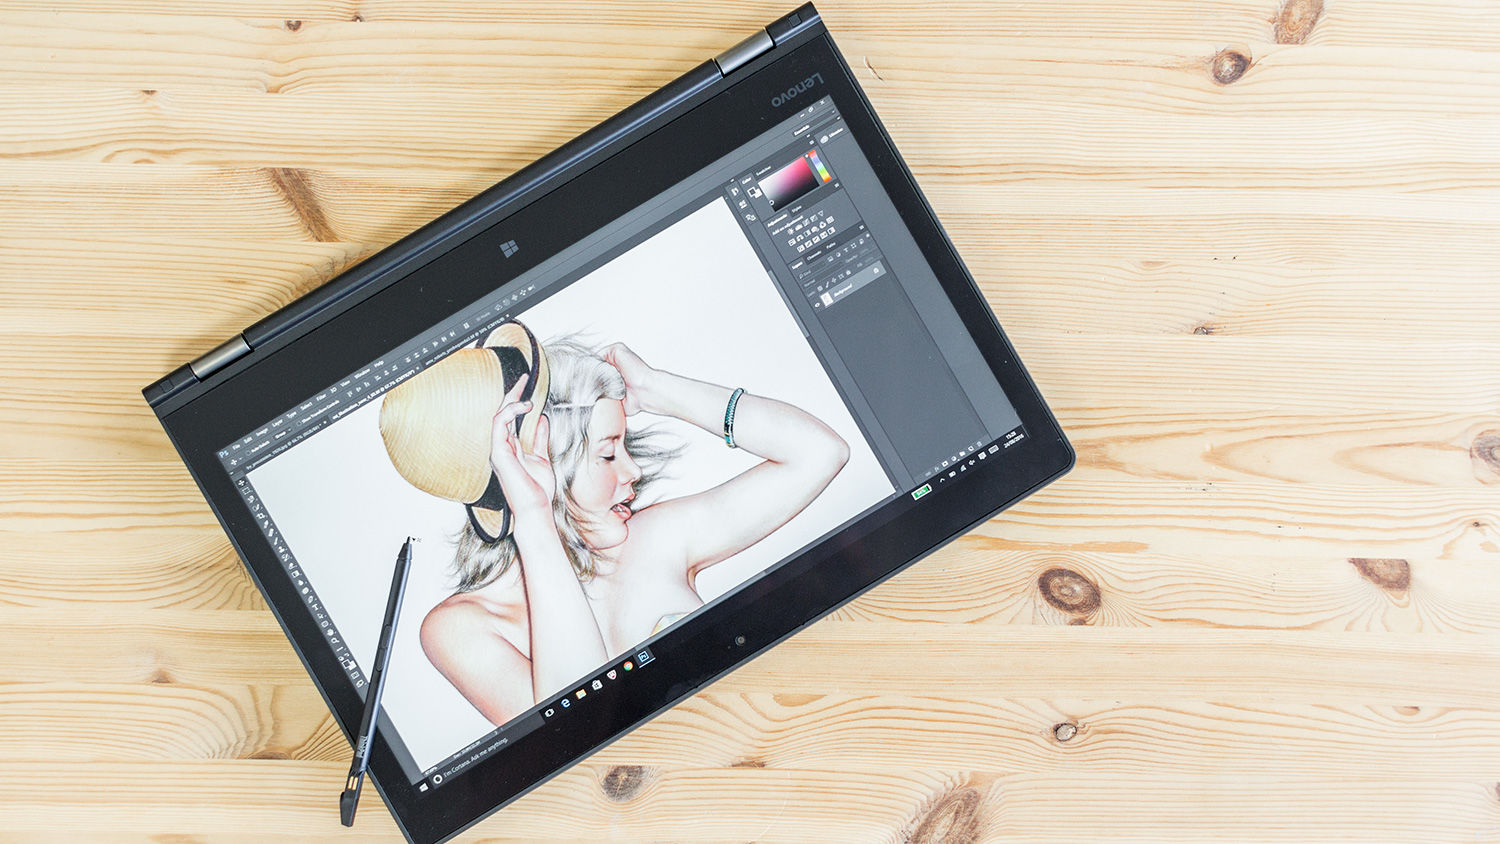 Drawing Smooth Lines In Photo With Tablet : Lenovo thinkpad p yoga review digital arts